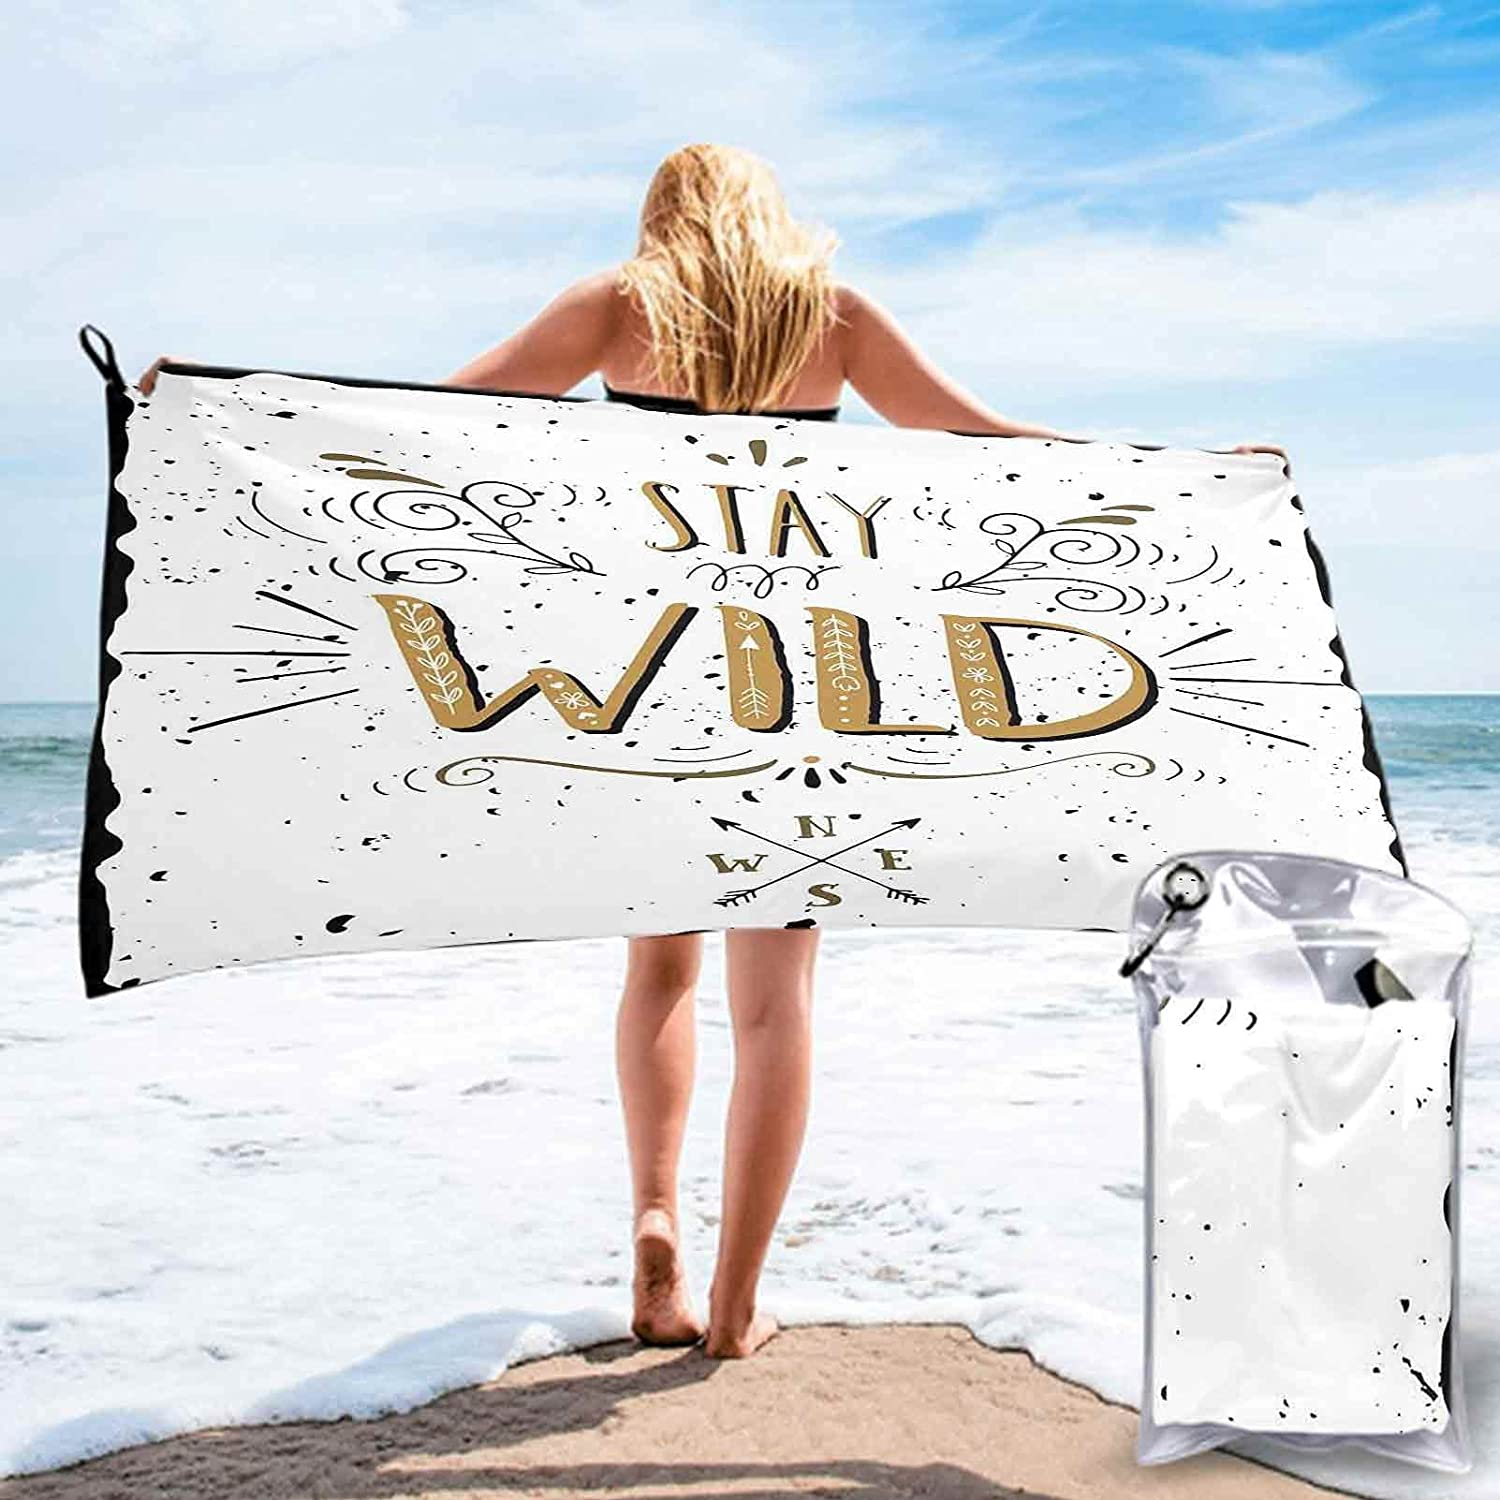 Quote Large Challenge the lowest price of Japan ☆ Bath Towels Quick-Dry Soft 2021 new Saying Wild Stay with Gr